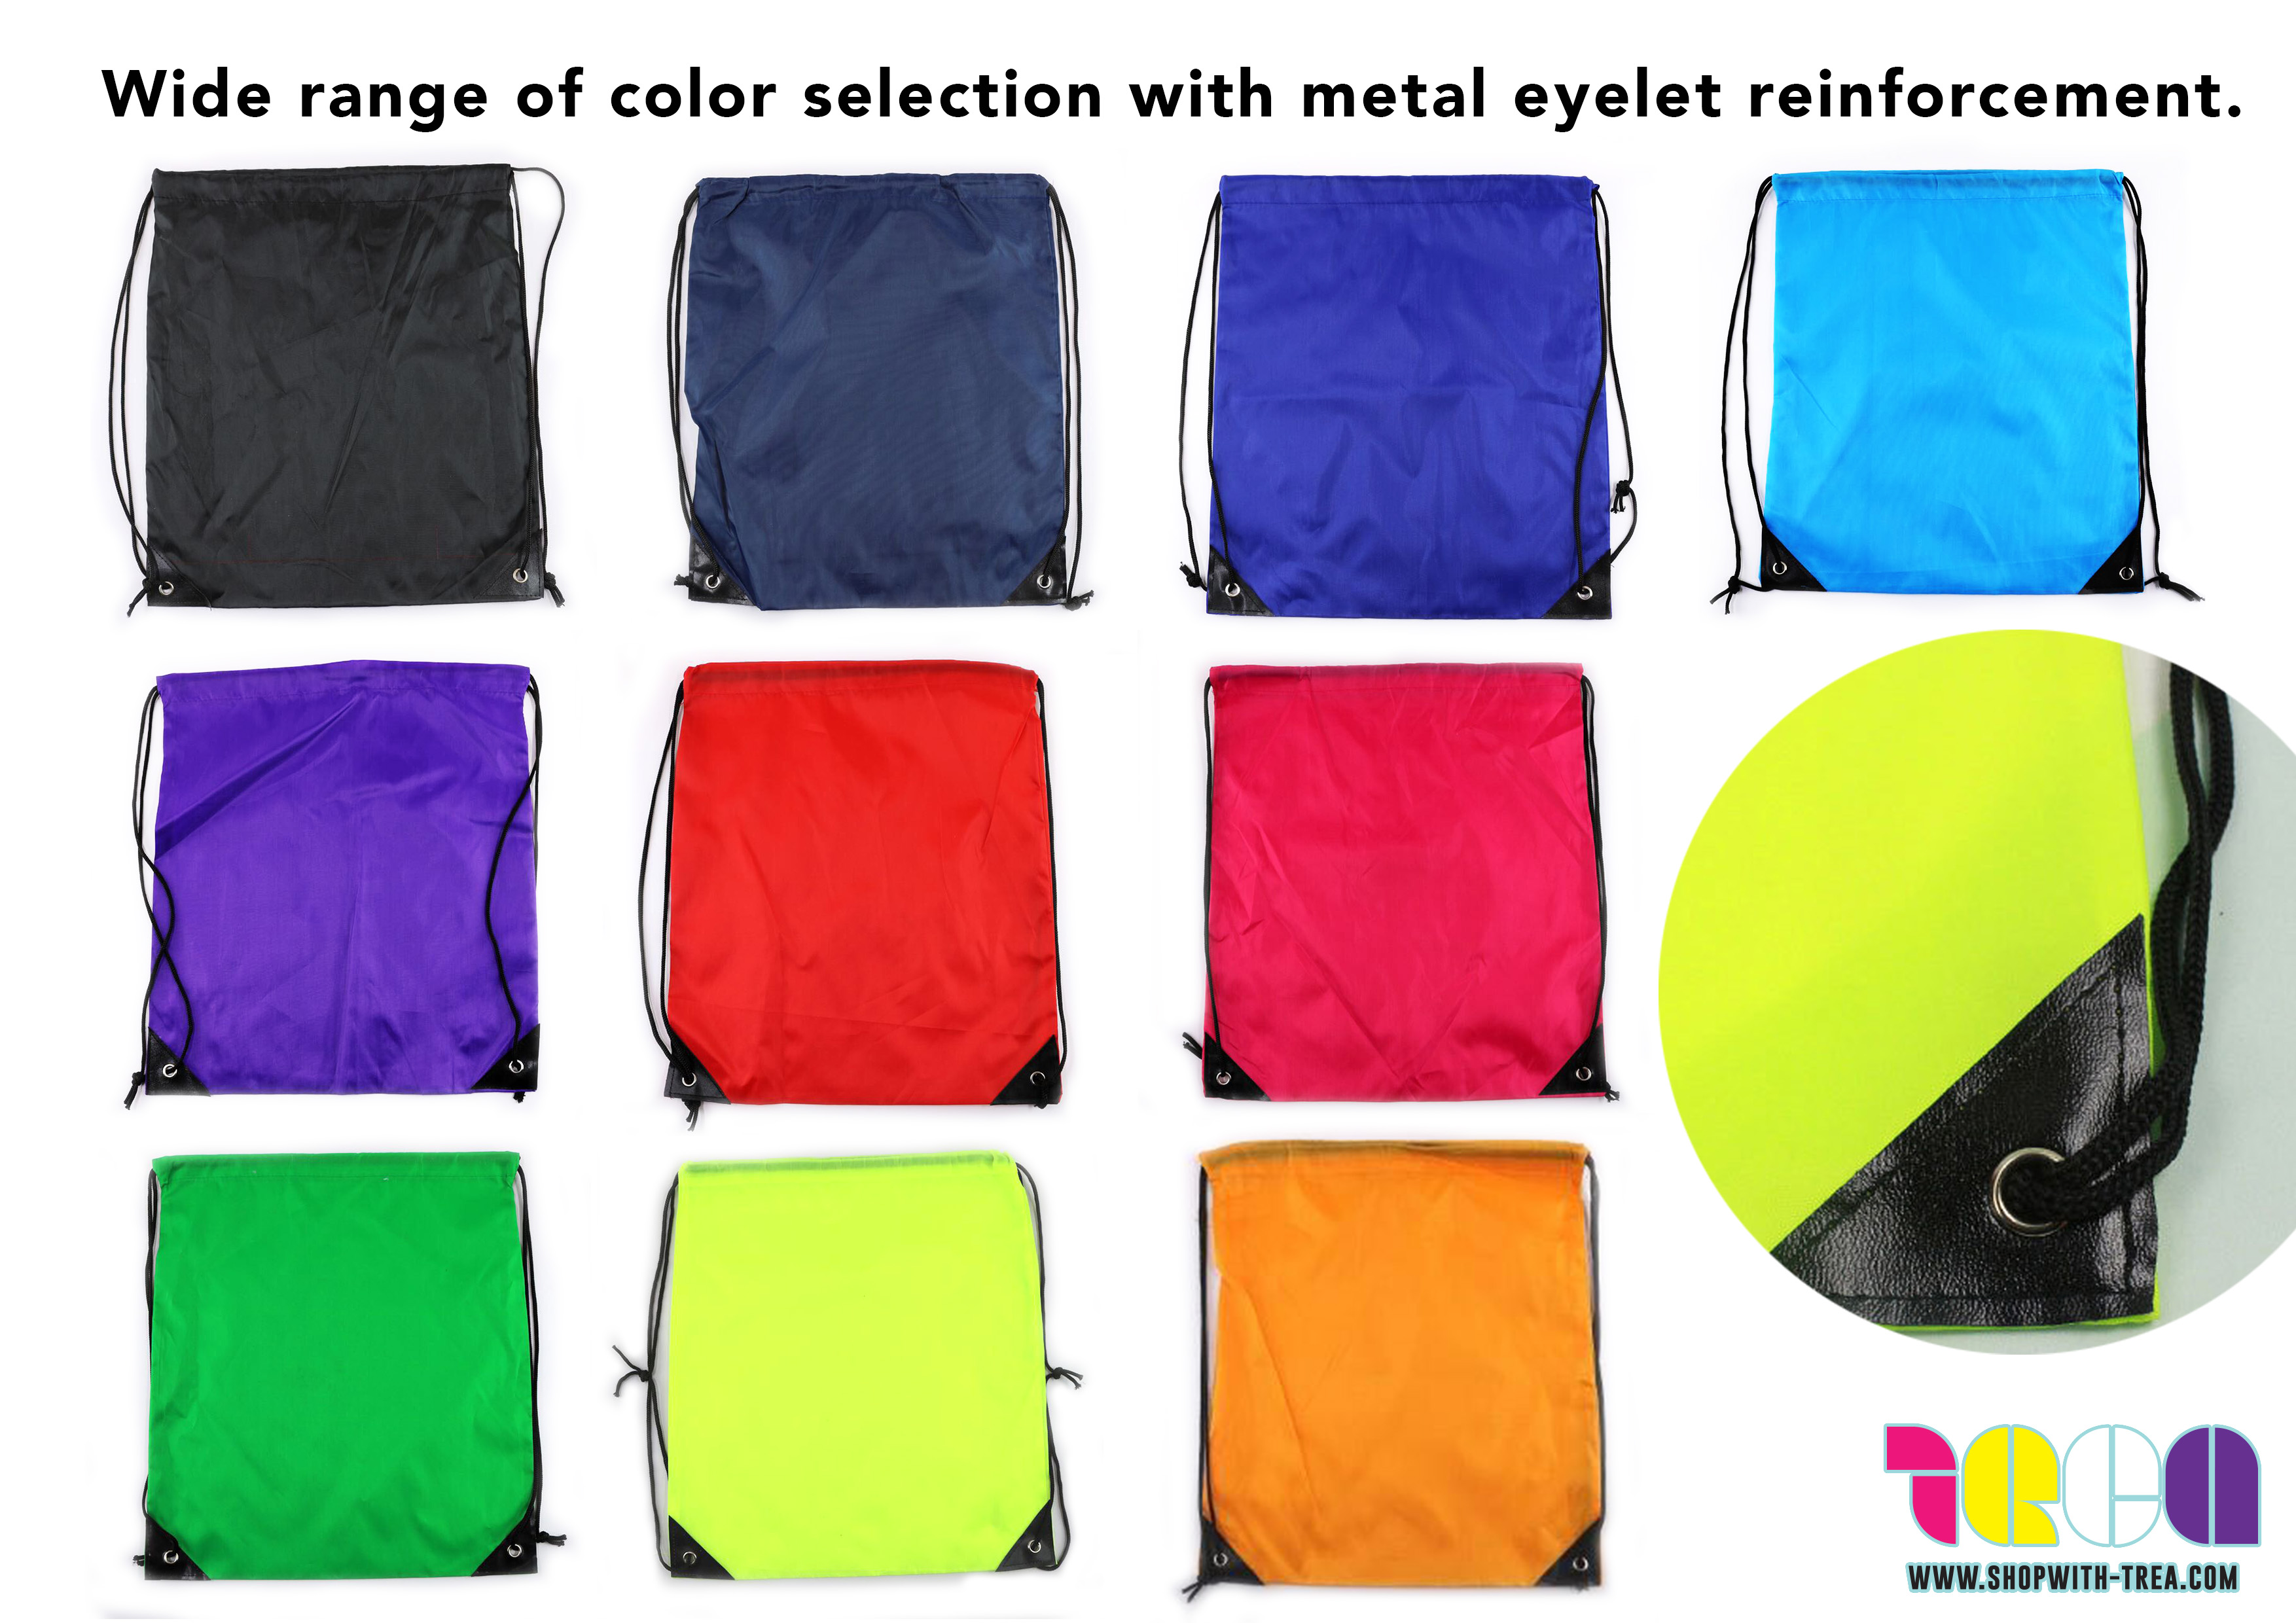 Polyester nylon Drawstring bag colours